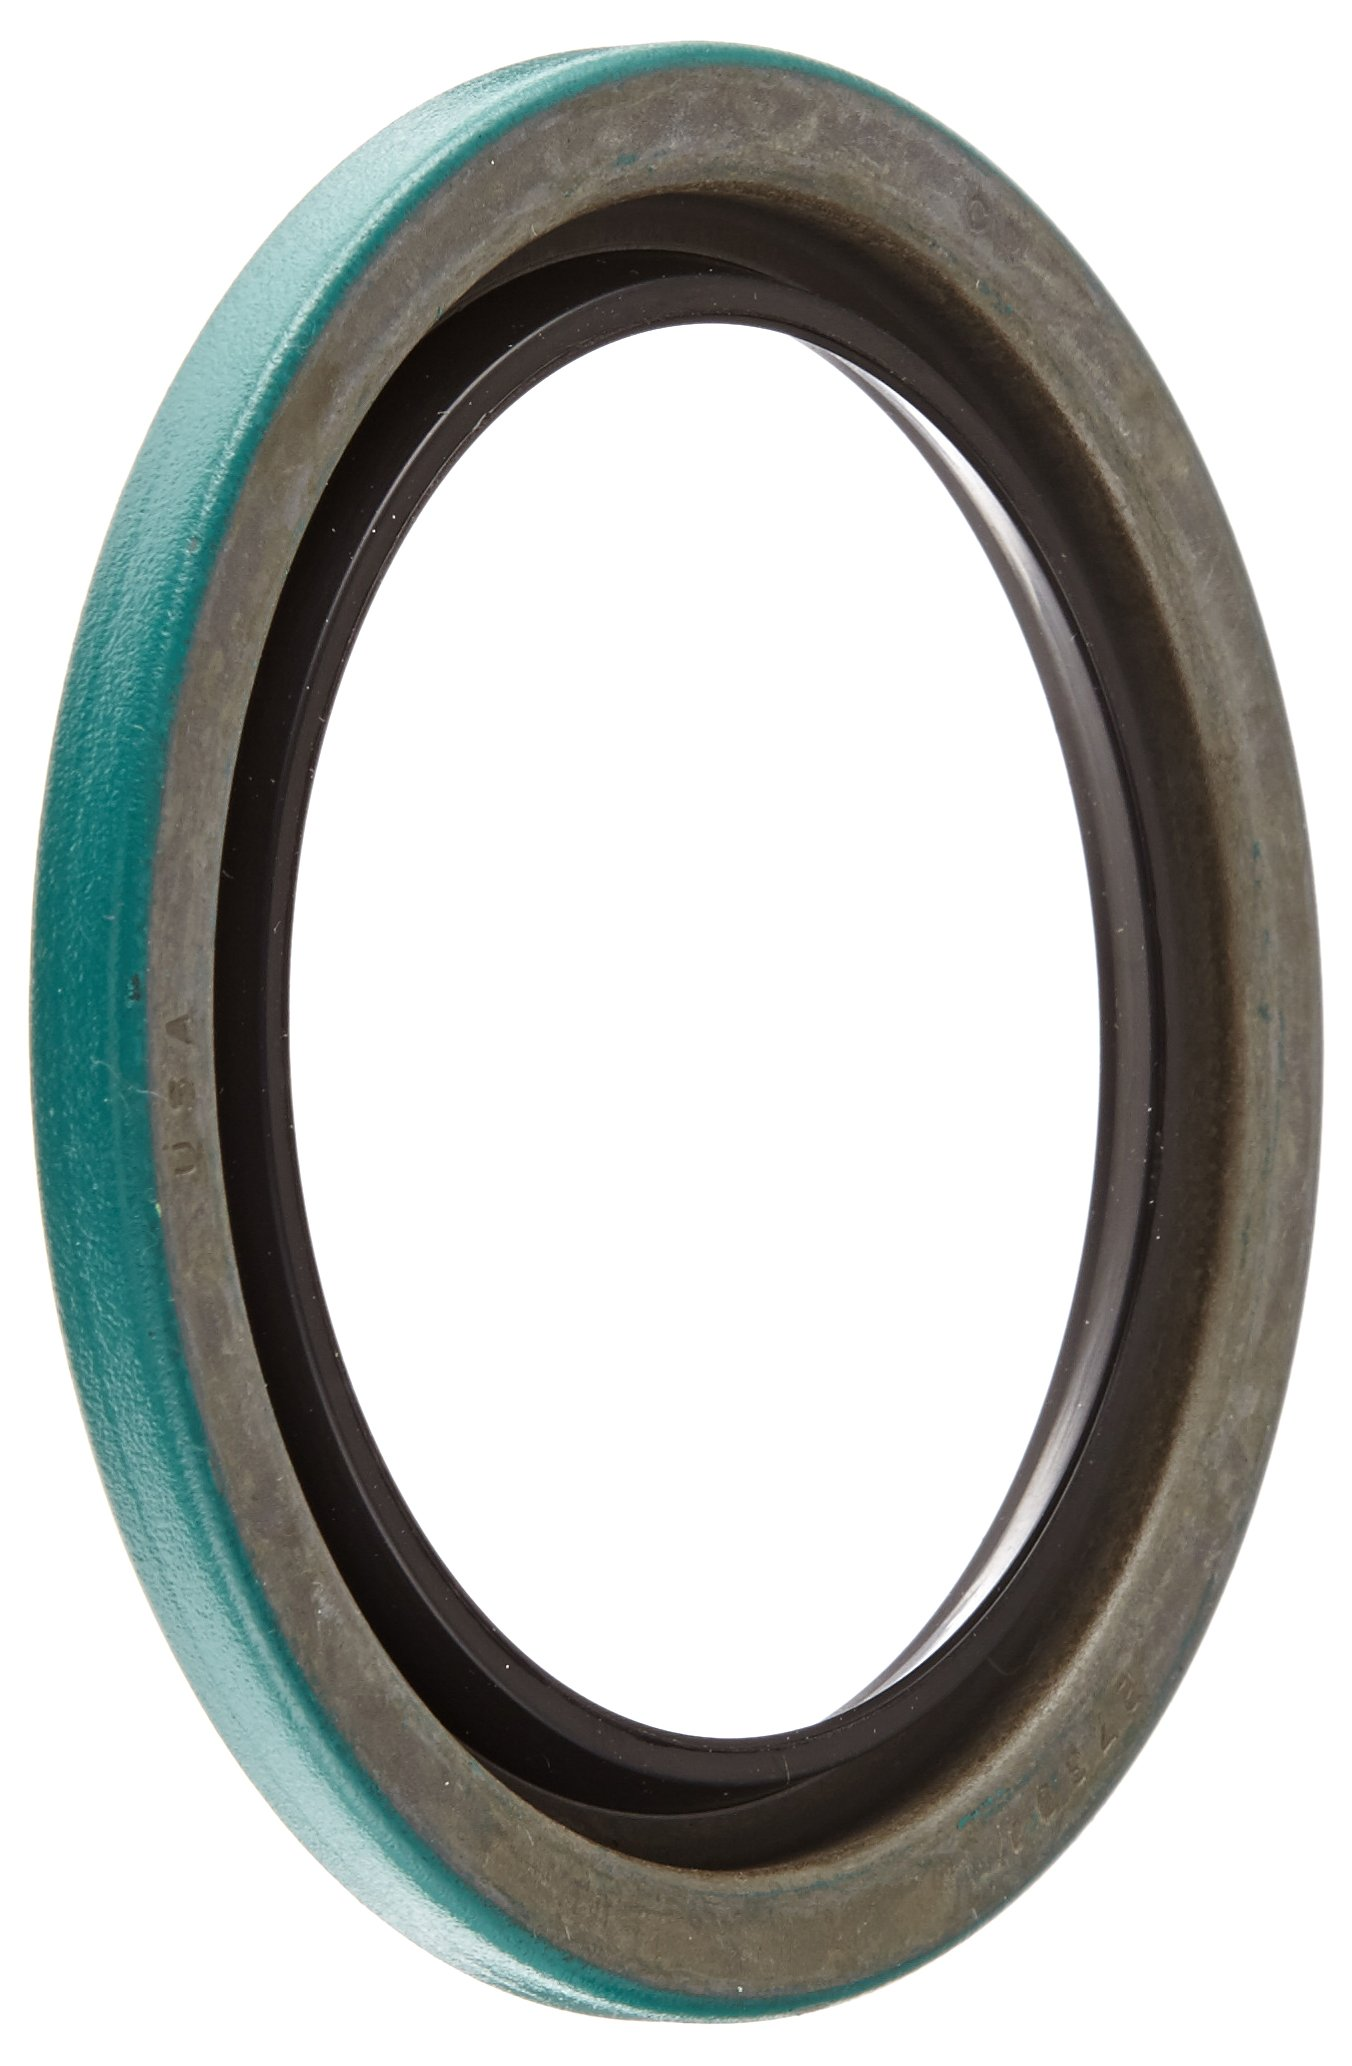 1 Bore SKF YET 205-100 CW Ball Bearing Insert 2430.00 pounds Dynamic Load Capacity Double Sealed Eccentric Collar 52 mm OD 15 mm Outer Ring Width Steel Regreasable